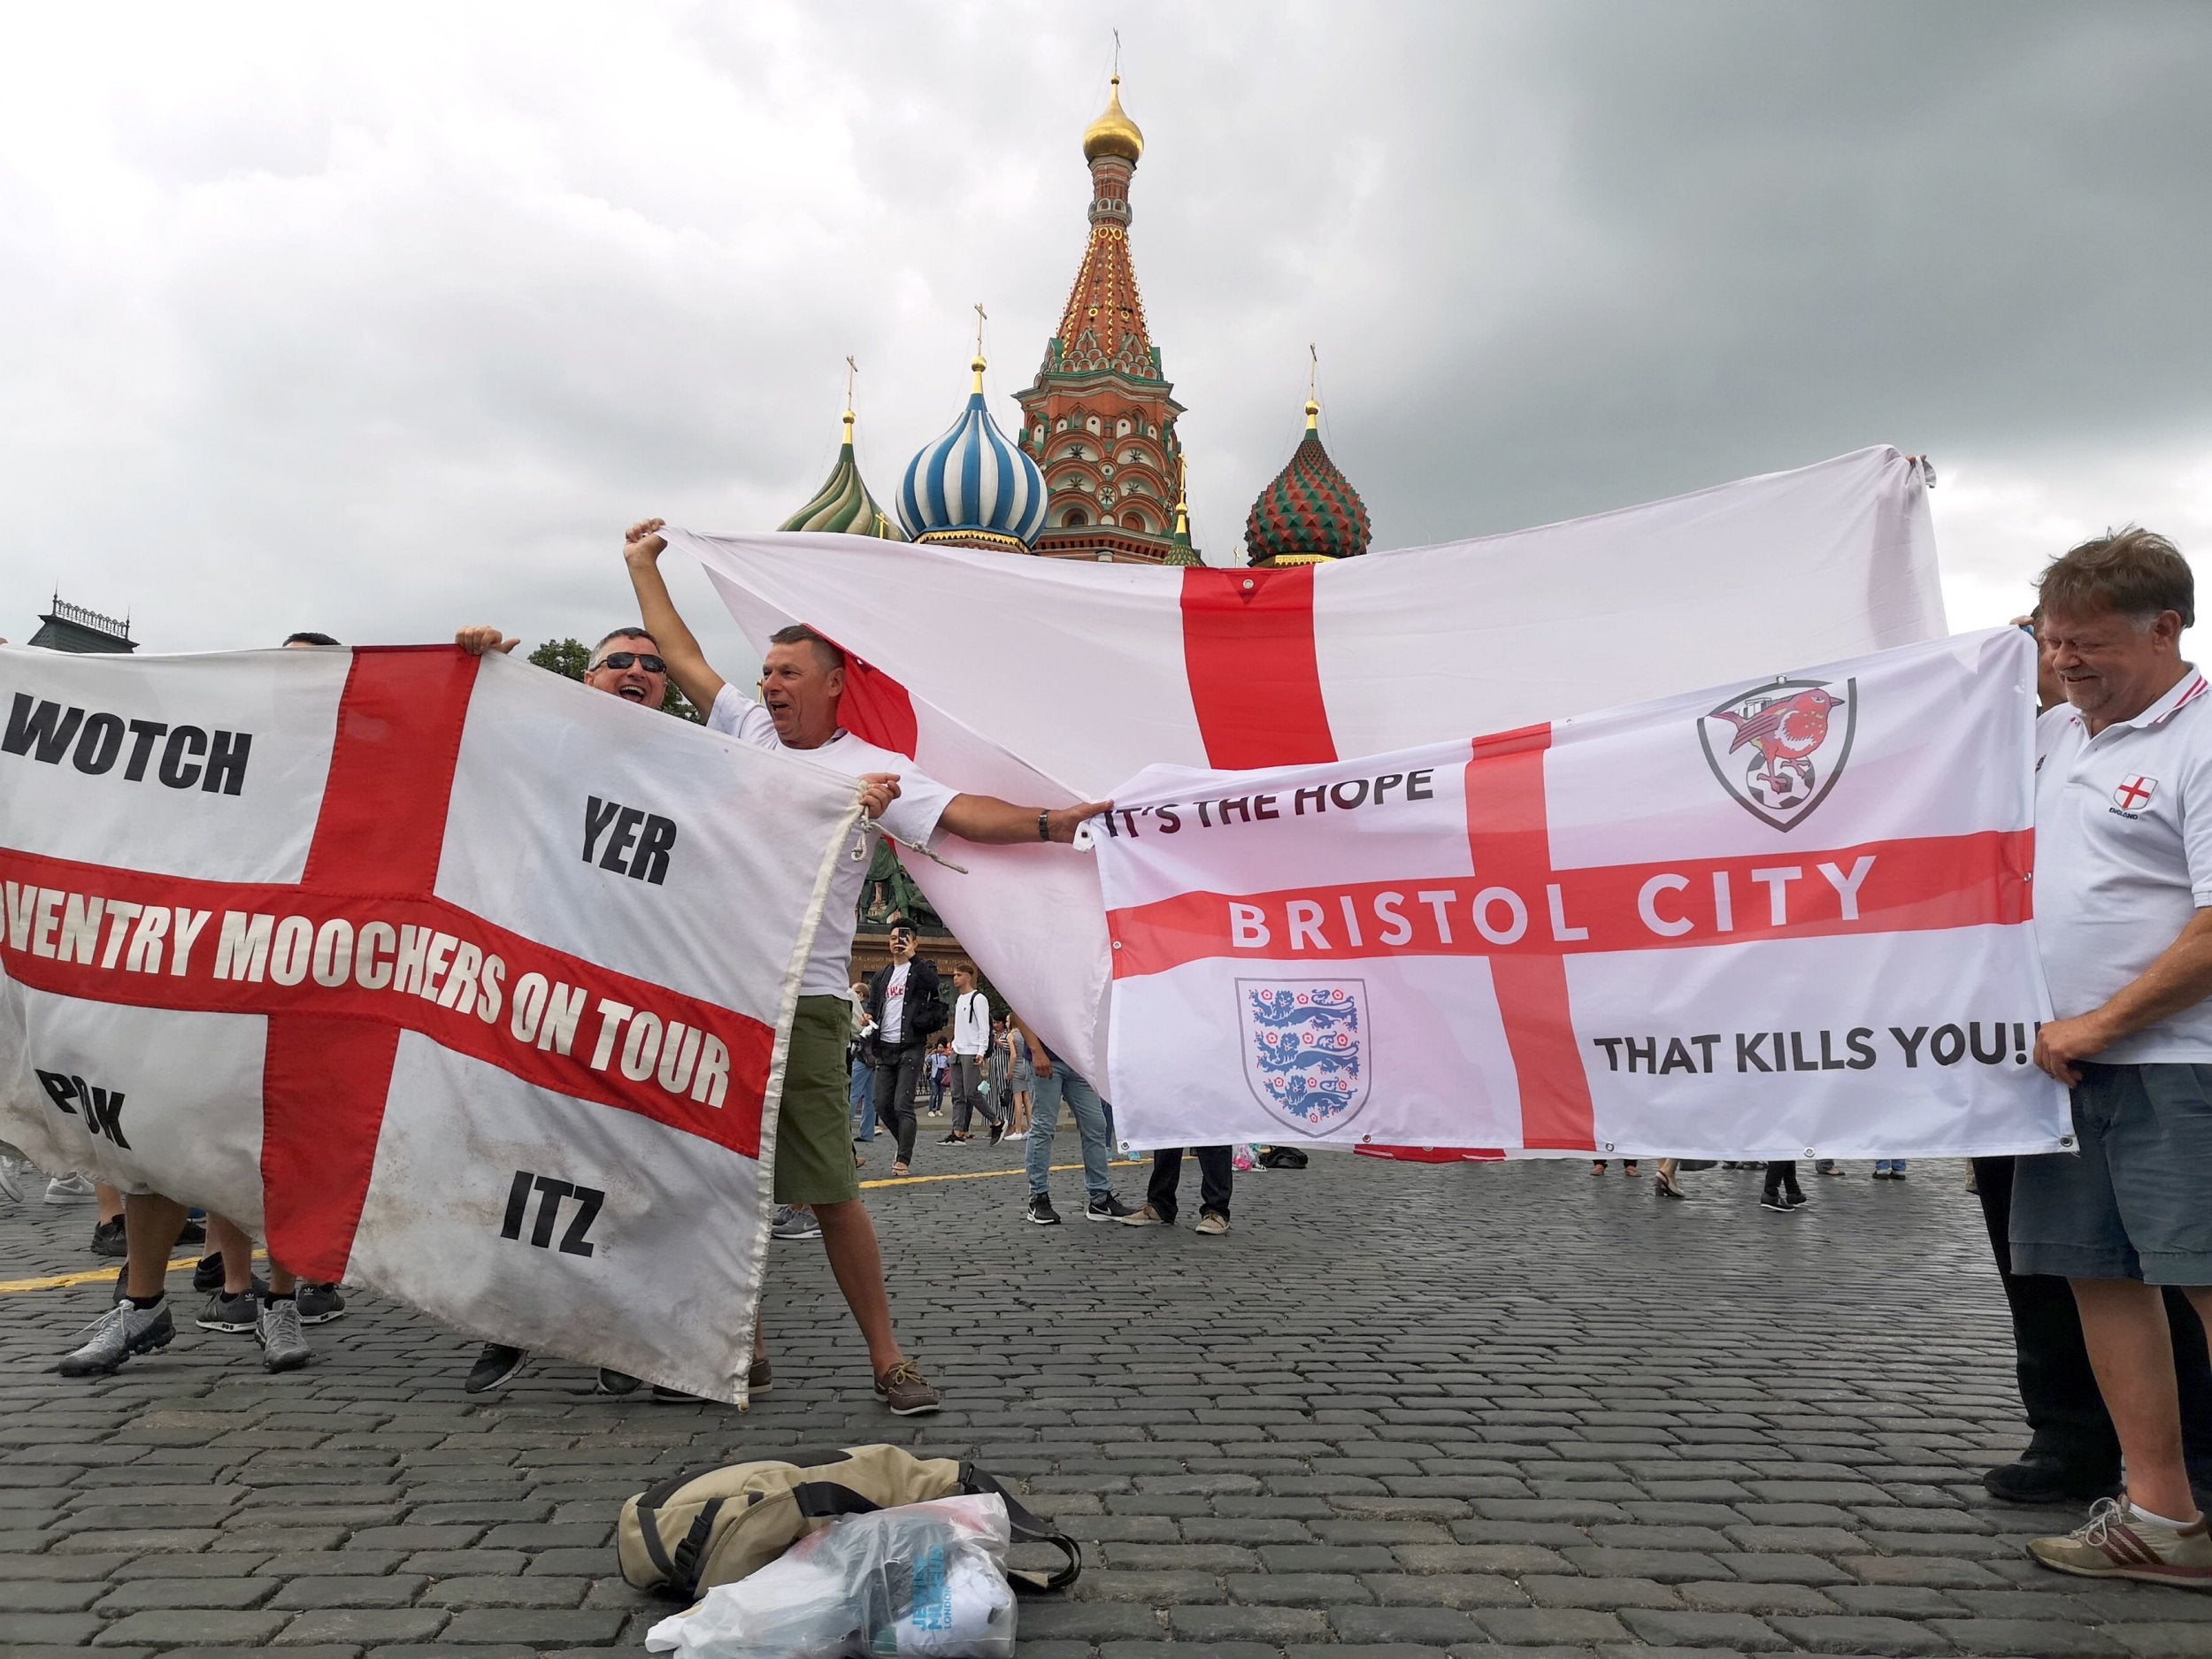 World Cup 2018: Why Russians might be be supporting England